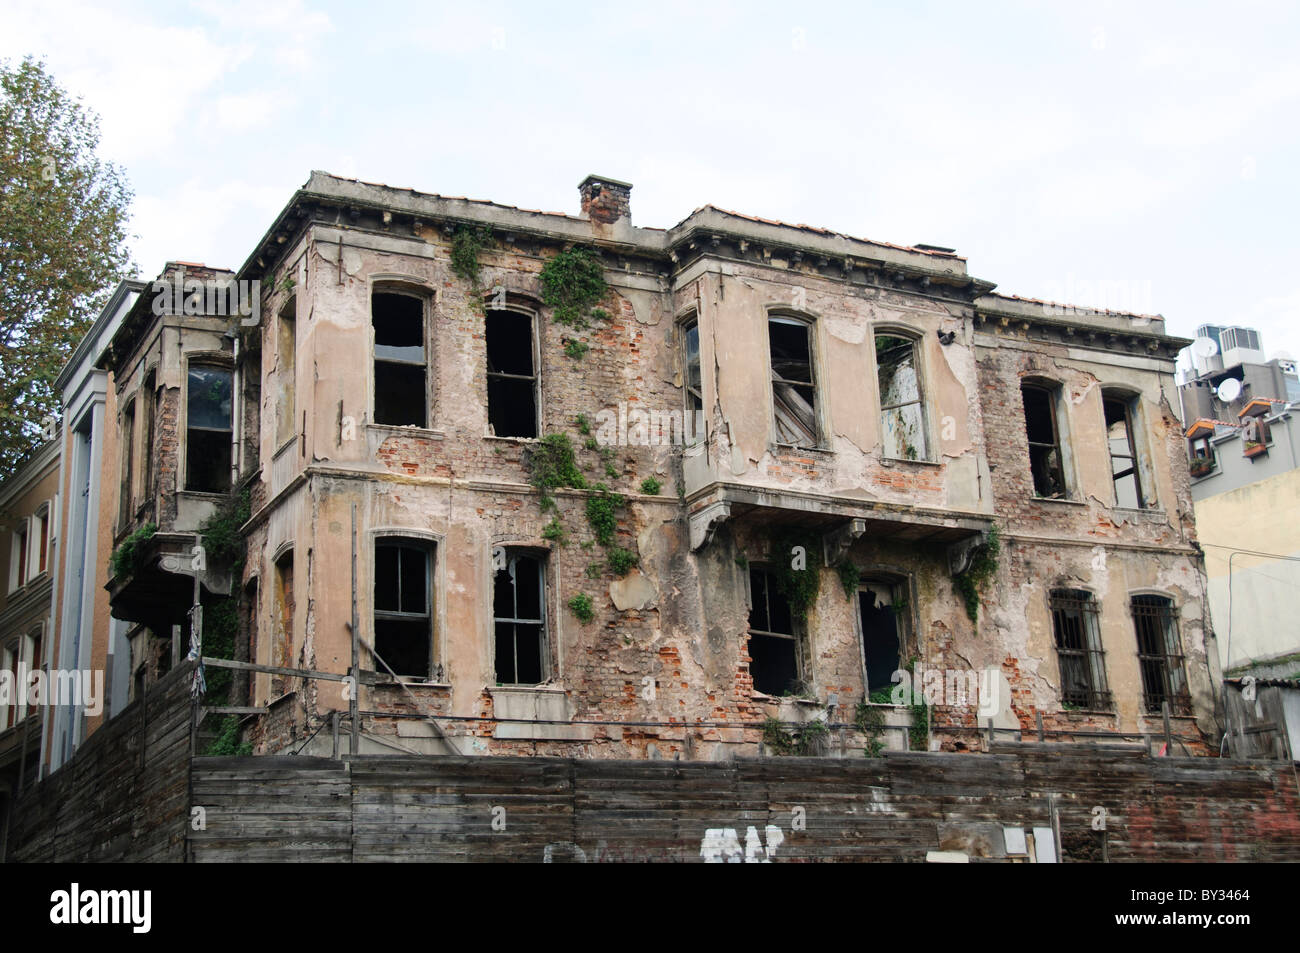 An old abandoned home in Istanbul's Sultahment distrct. - Stock Image